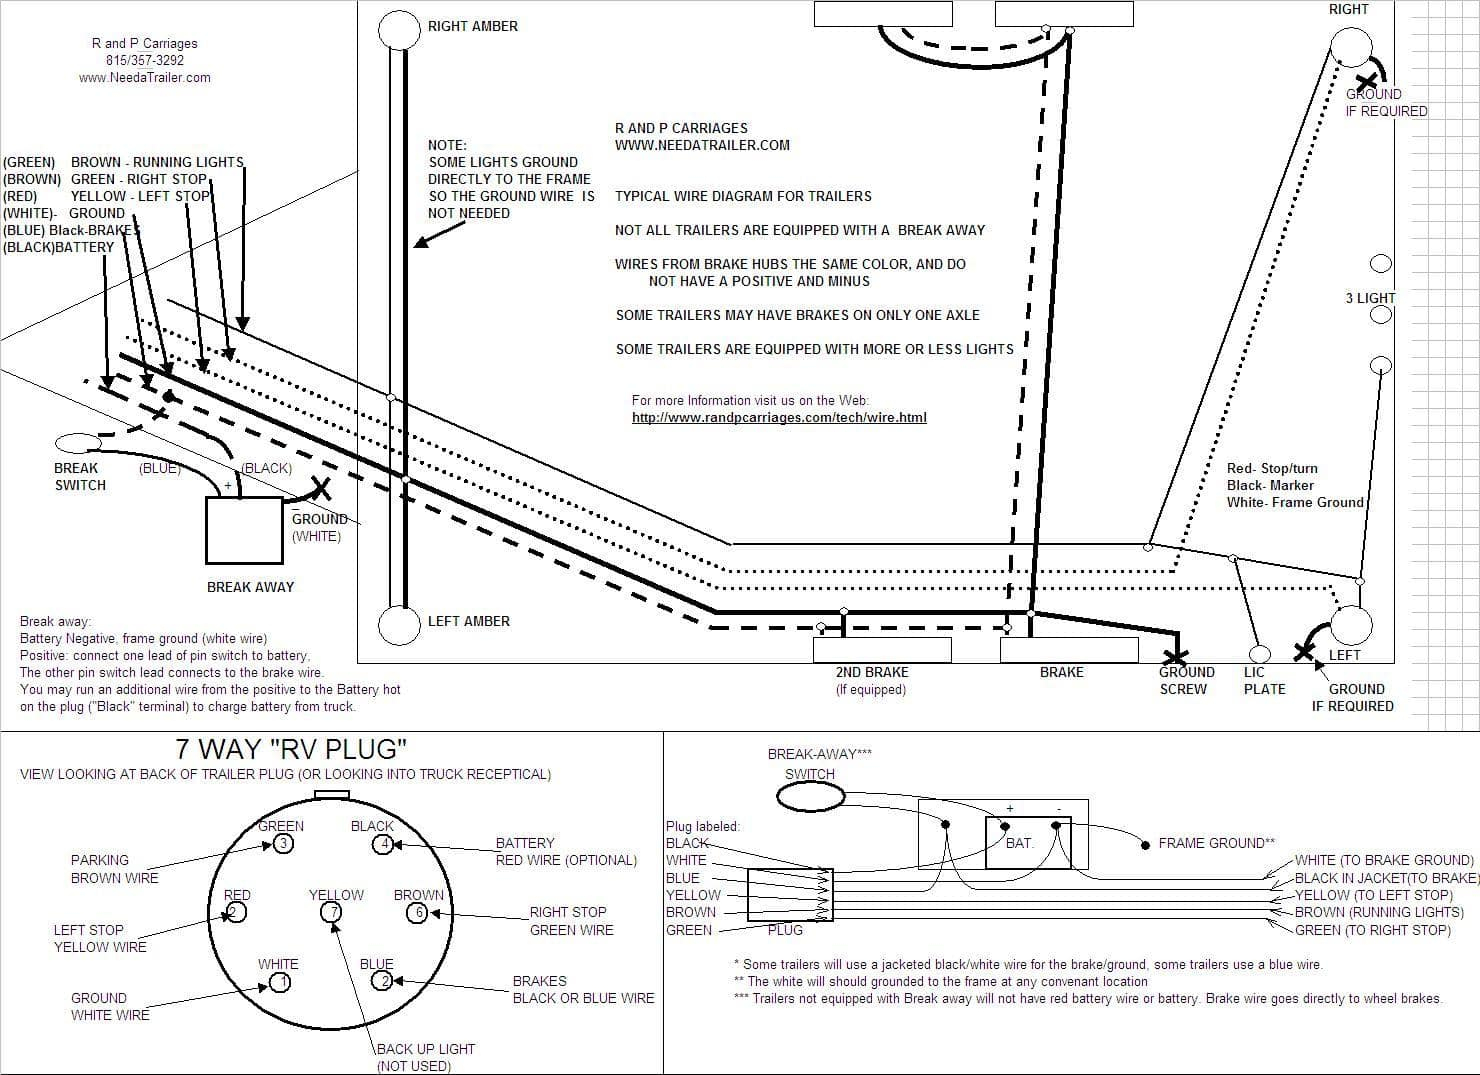 Trailer Wiring Diagram Without Brakes